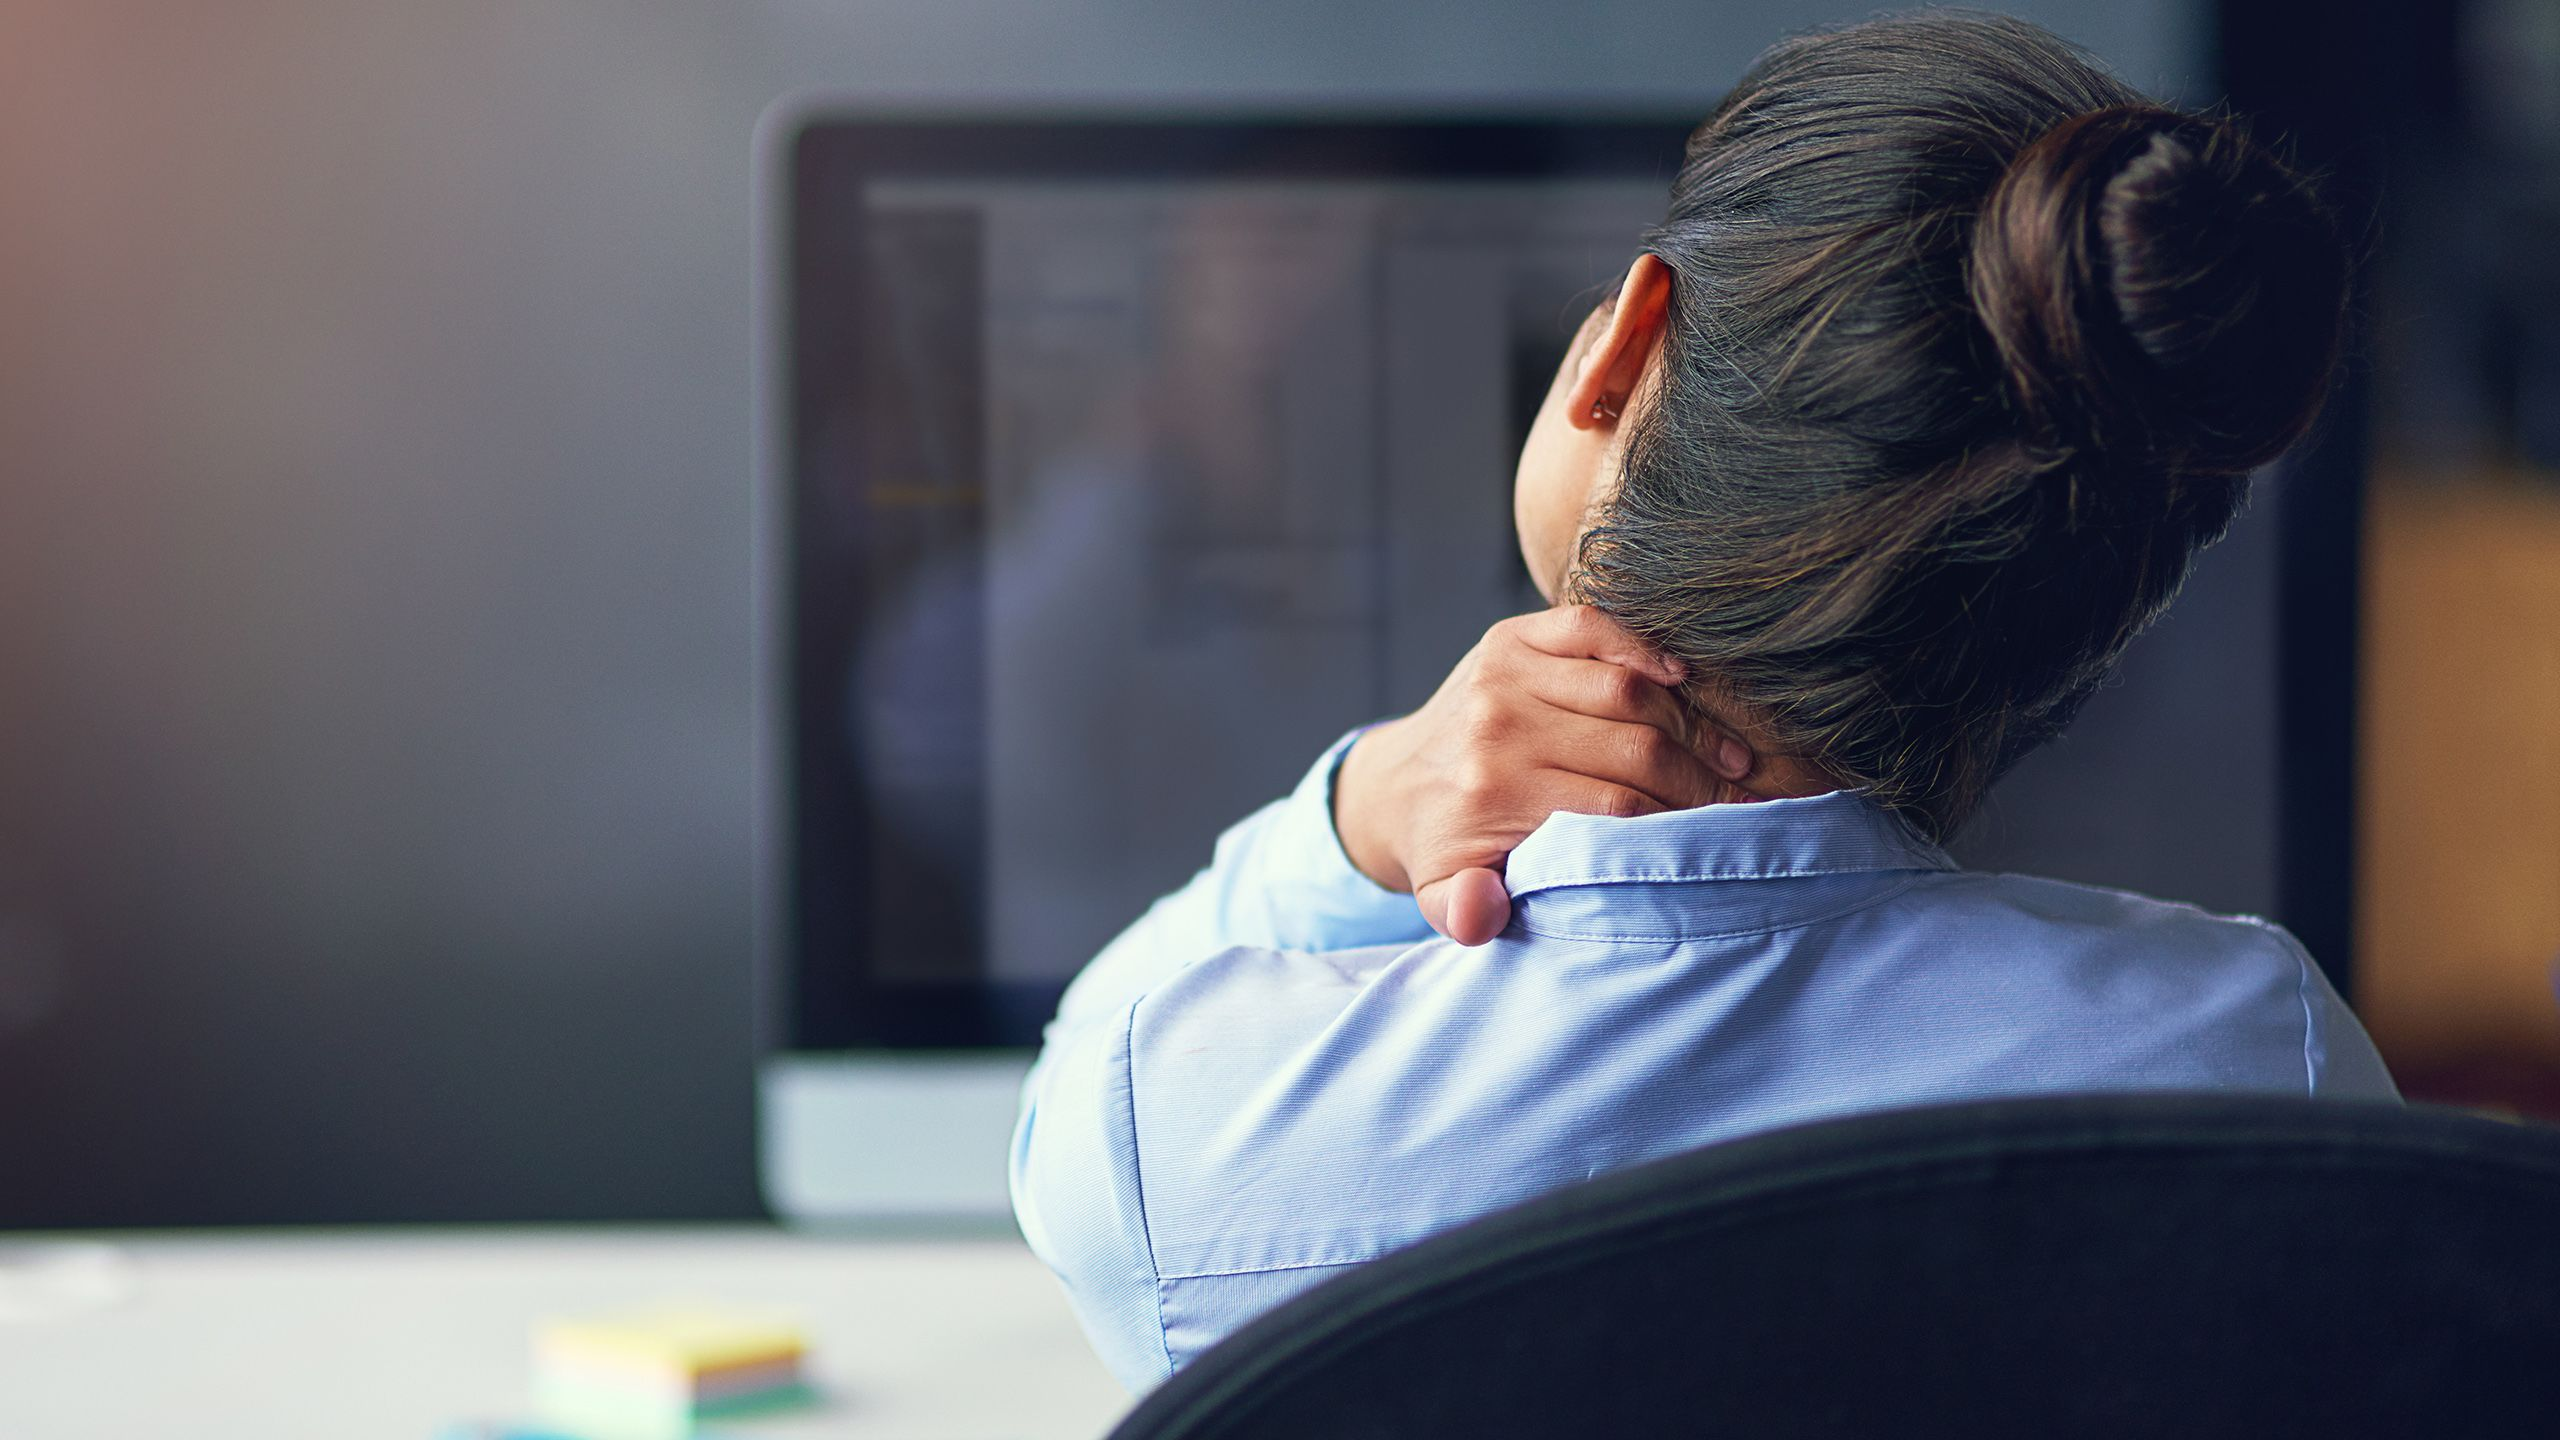 5 Ways Your Job May Be Hurting Your Health